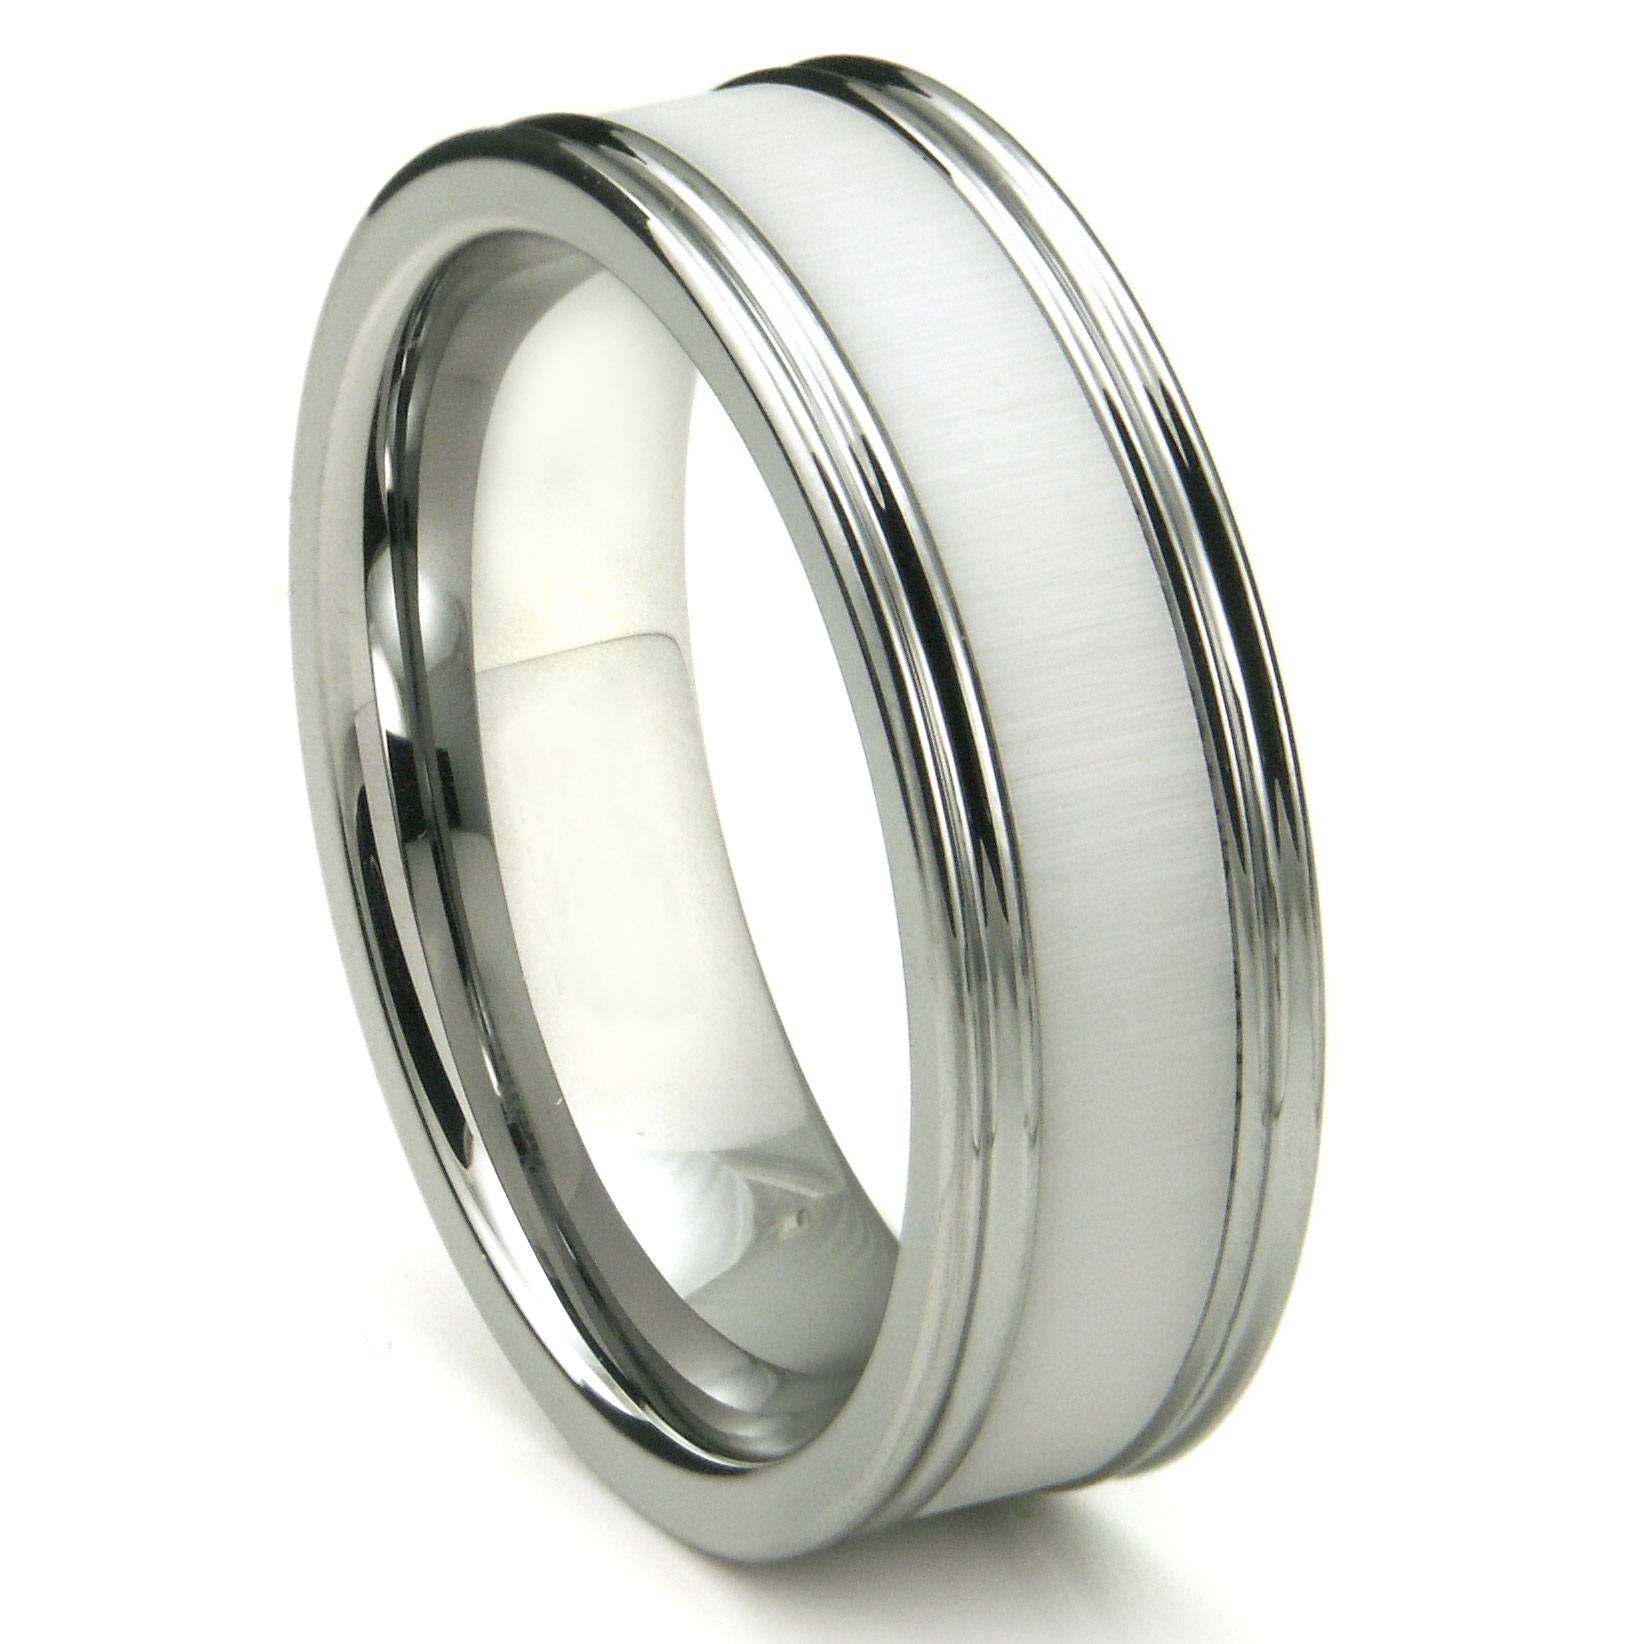 Tungsten Carbide White Ceramic Inlay Wedding Band Ring W In Strongest Metal Wedding Bands (View 13 of 15)